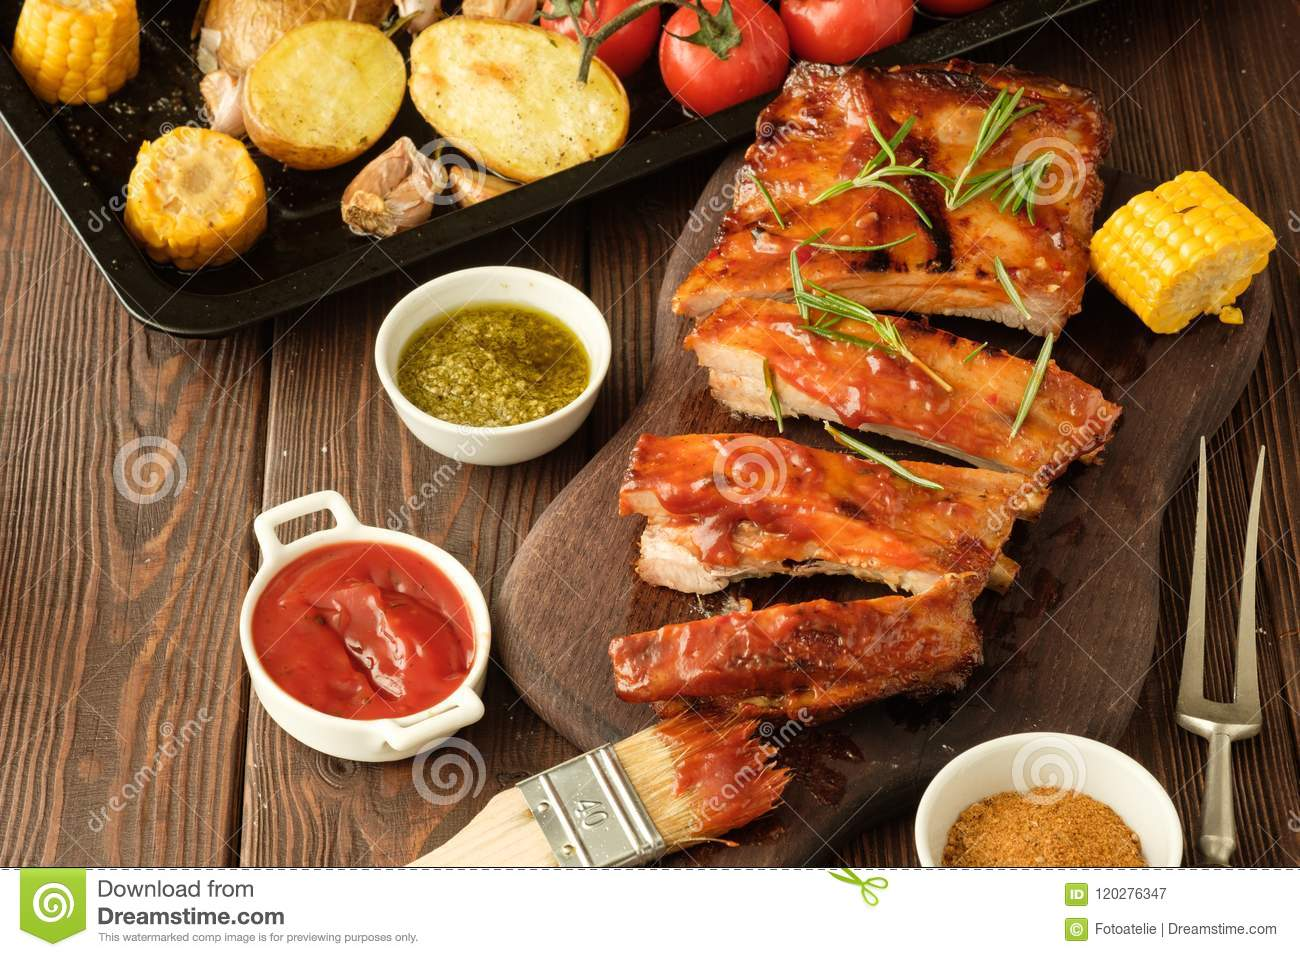 Delicious barbecued ribs seasoned with a spicy basting sauce and